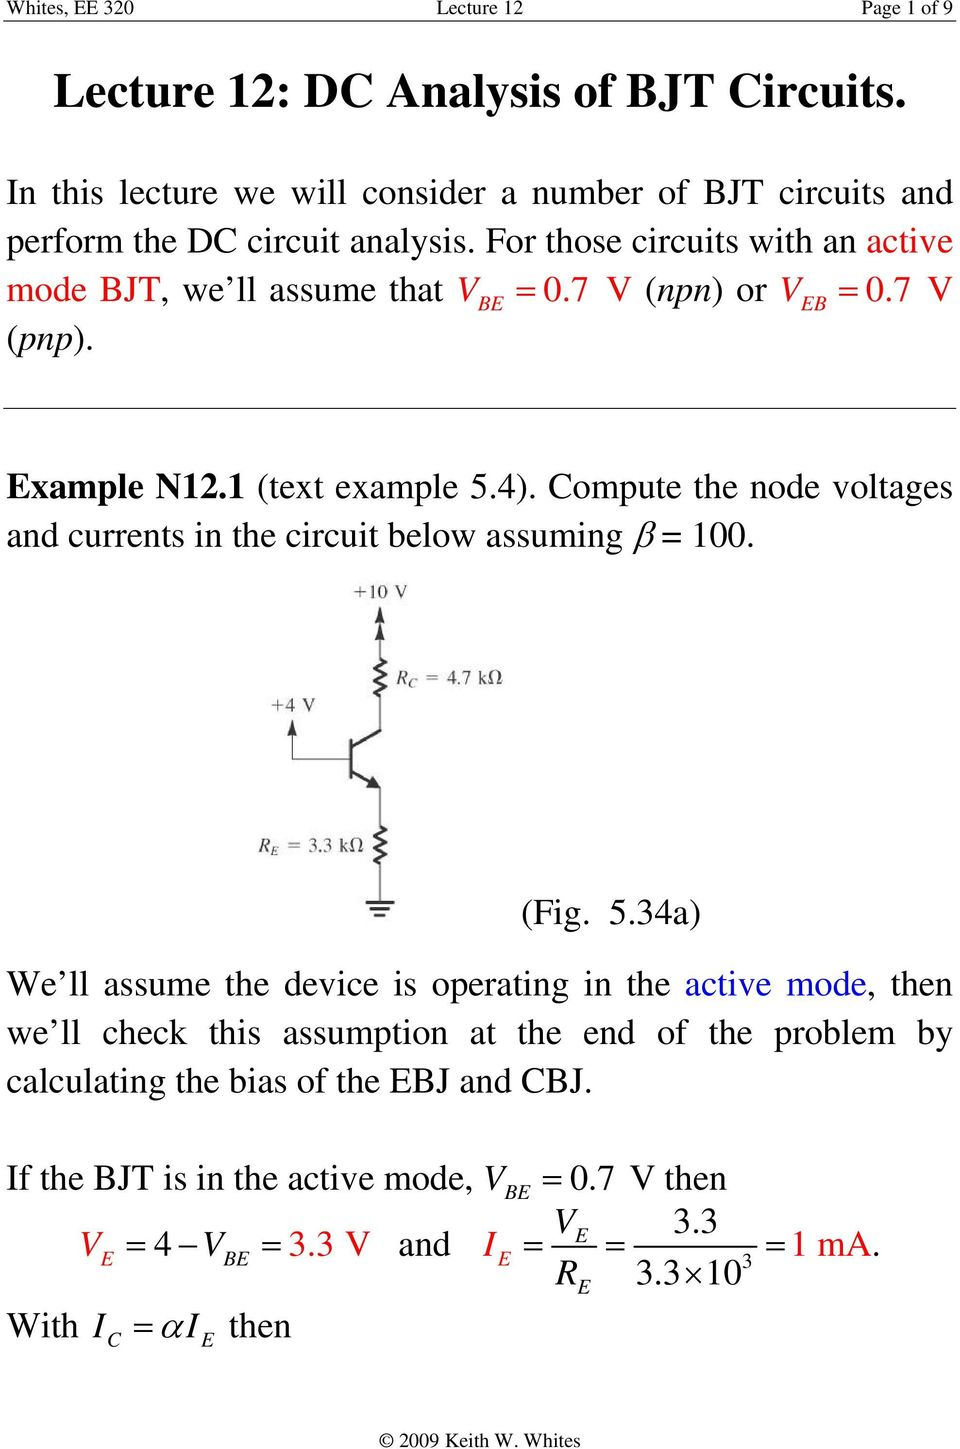 Lecture 12 Dc Analysis Of Bjt Circuits Pdf Circuit Solving Tutorial 5 Ompute The Node Voltages And Currents In Below Assuming 100